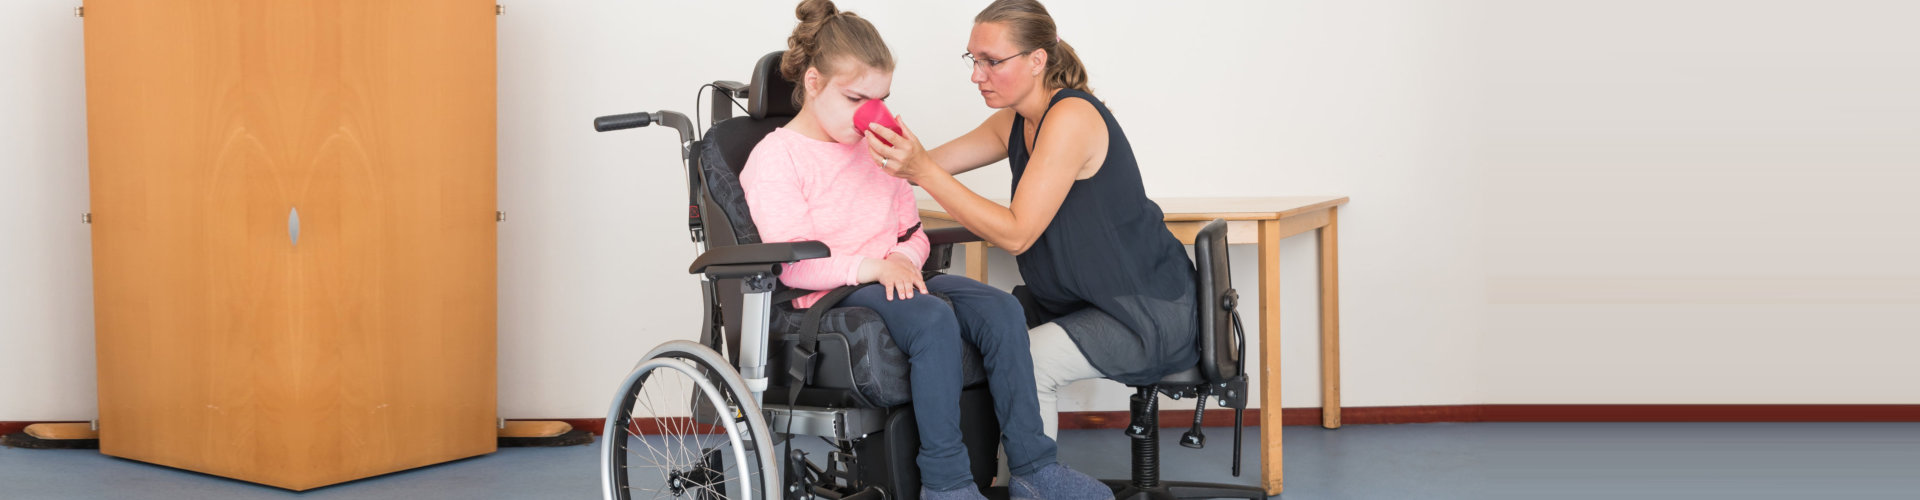 female nurse assisting the little girl in the wheelchair